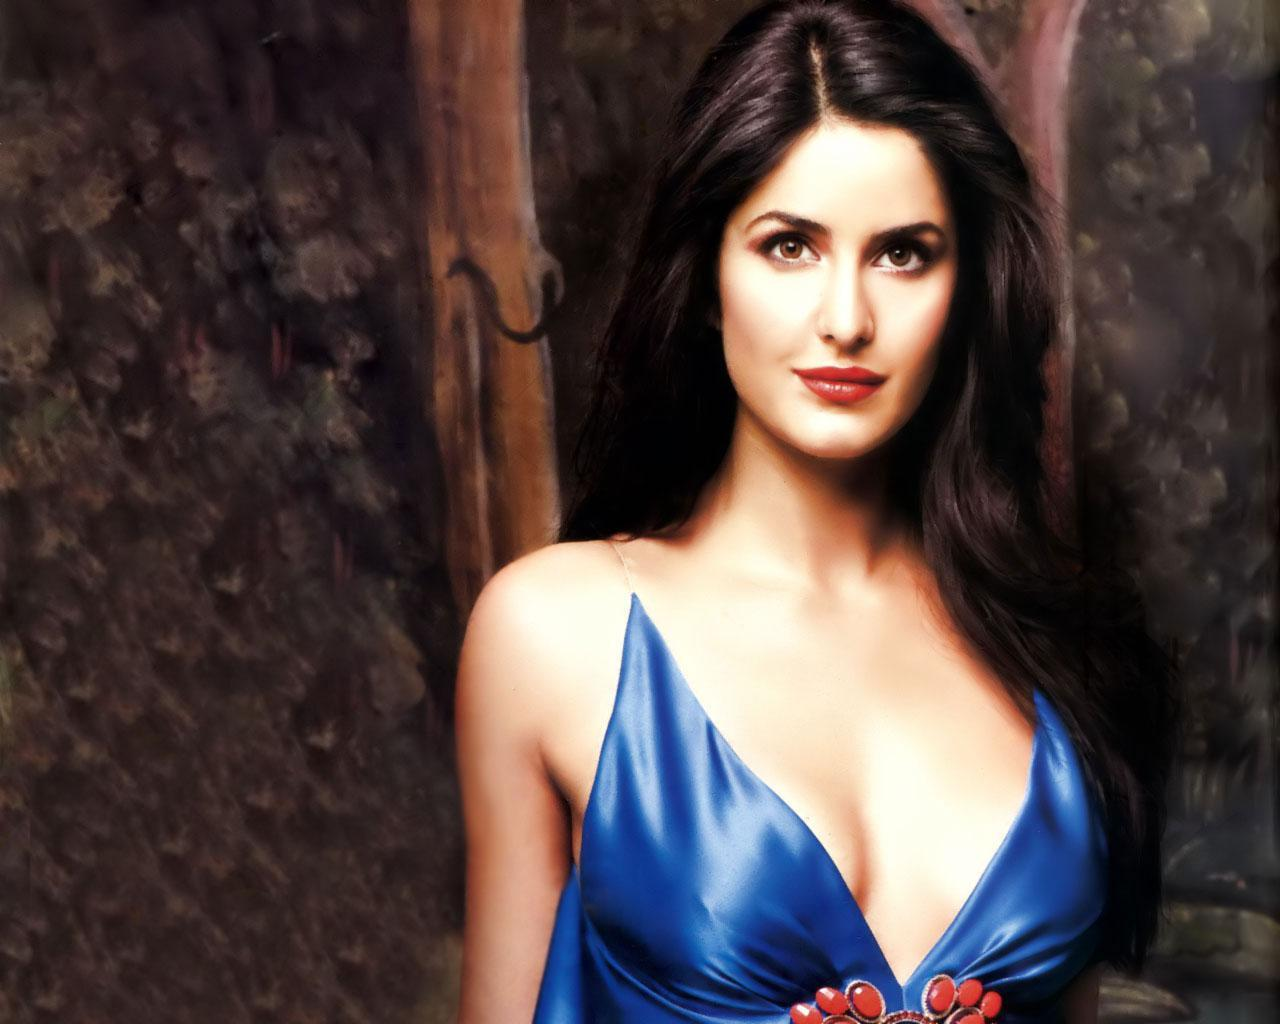 ... Kaif Hot Wallpapers Sizzling Bollywood Heroine Computer Ipad Laptops